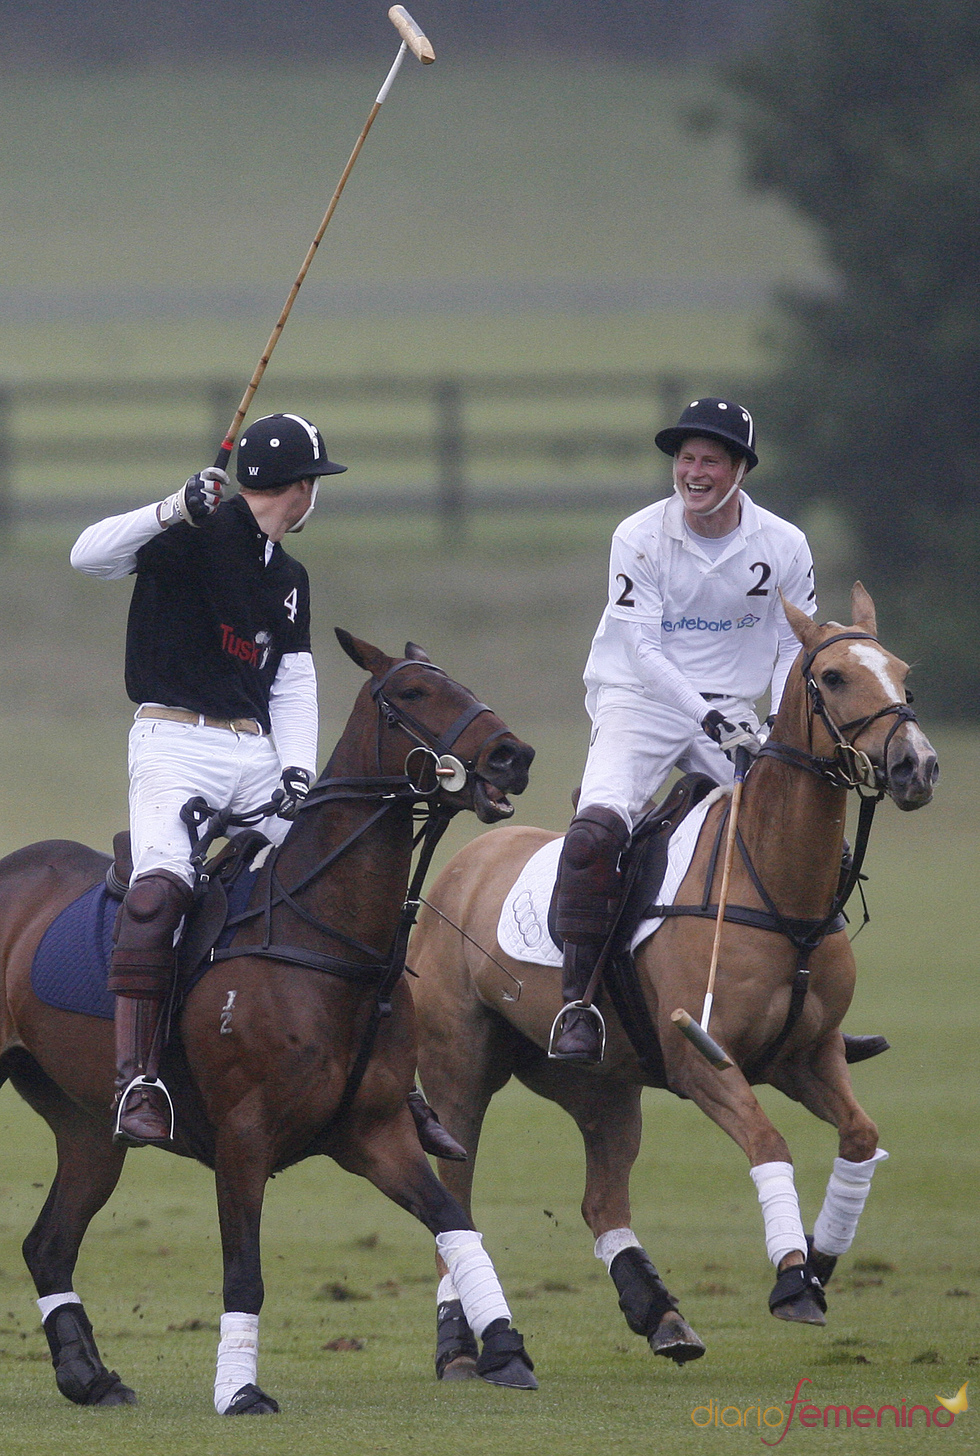 Los Príncipes Guillermo y Harry de Inglaterra en un partido de polo